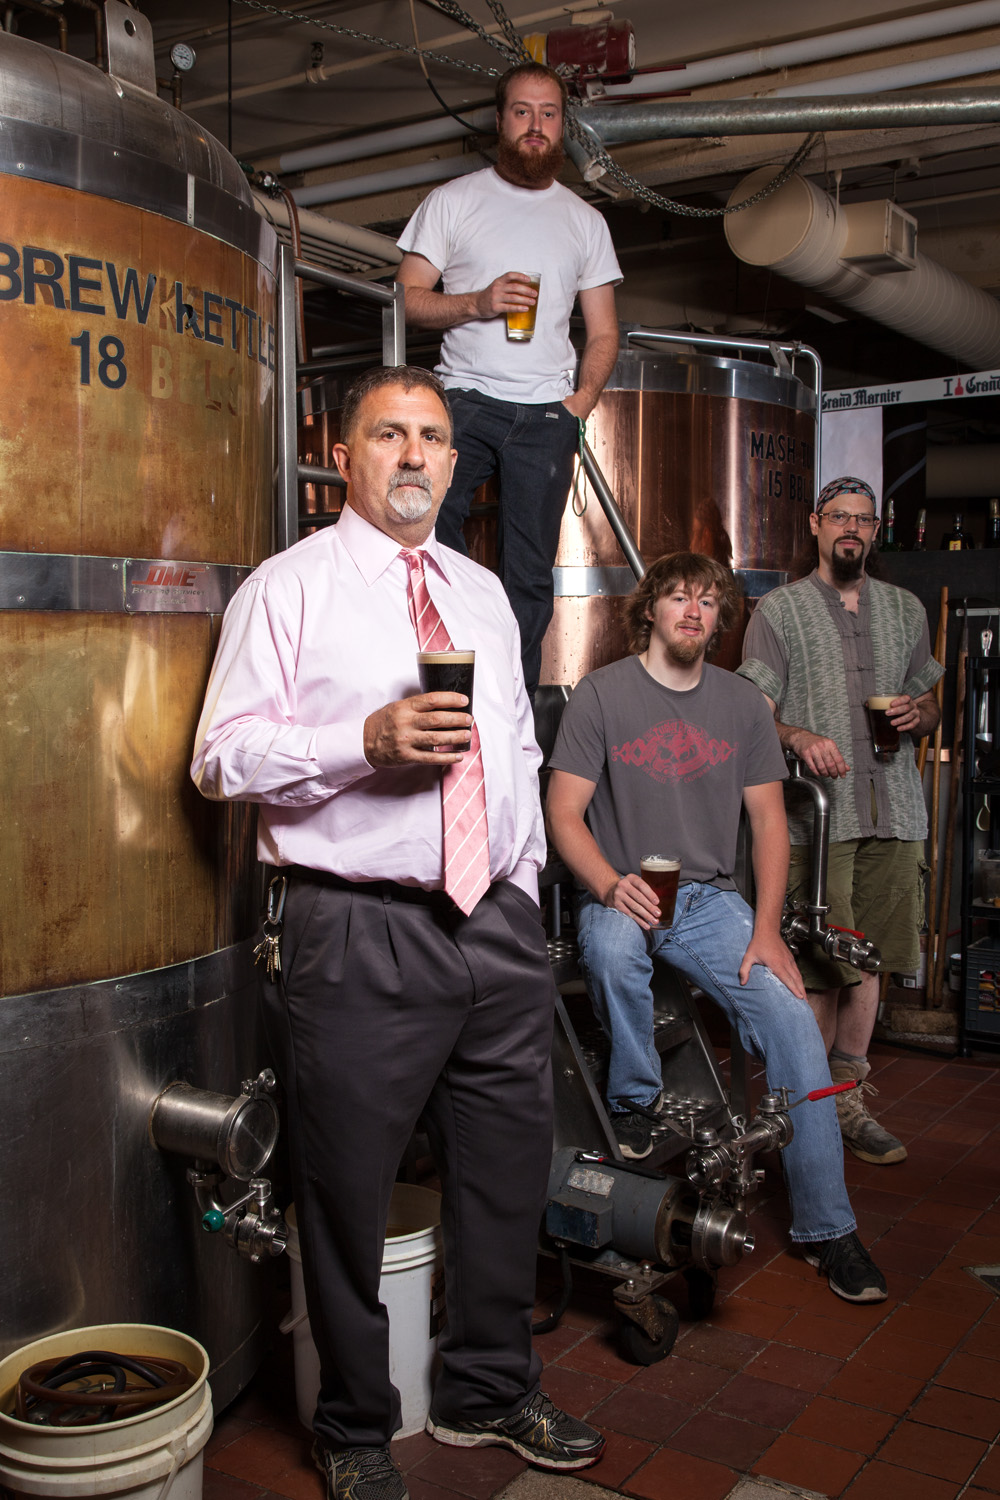 Peter Telge, Brewmaster and brew crew at Milly's Tavern (Stark Brewing Co.) Manchester, NH Established in 1994